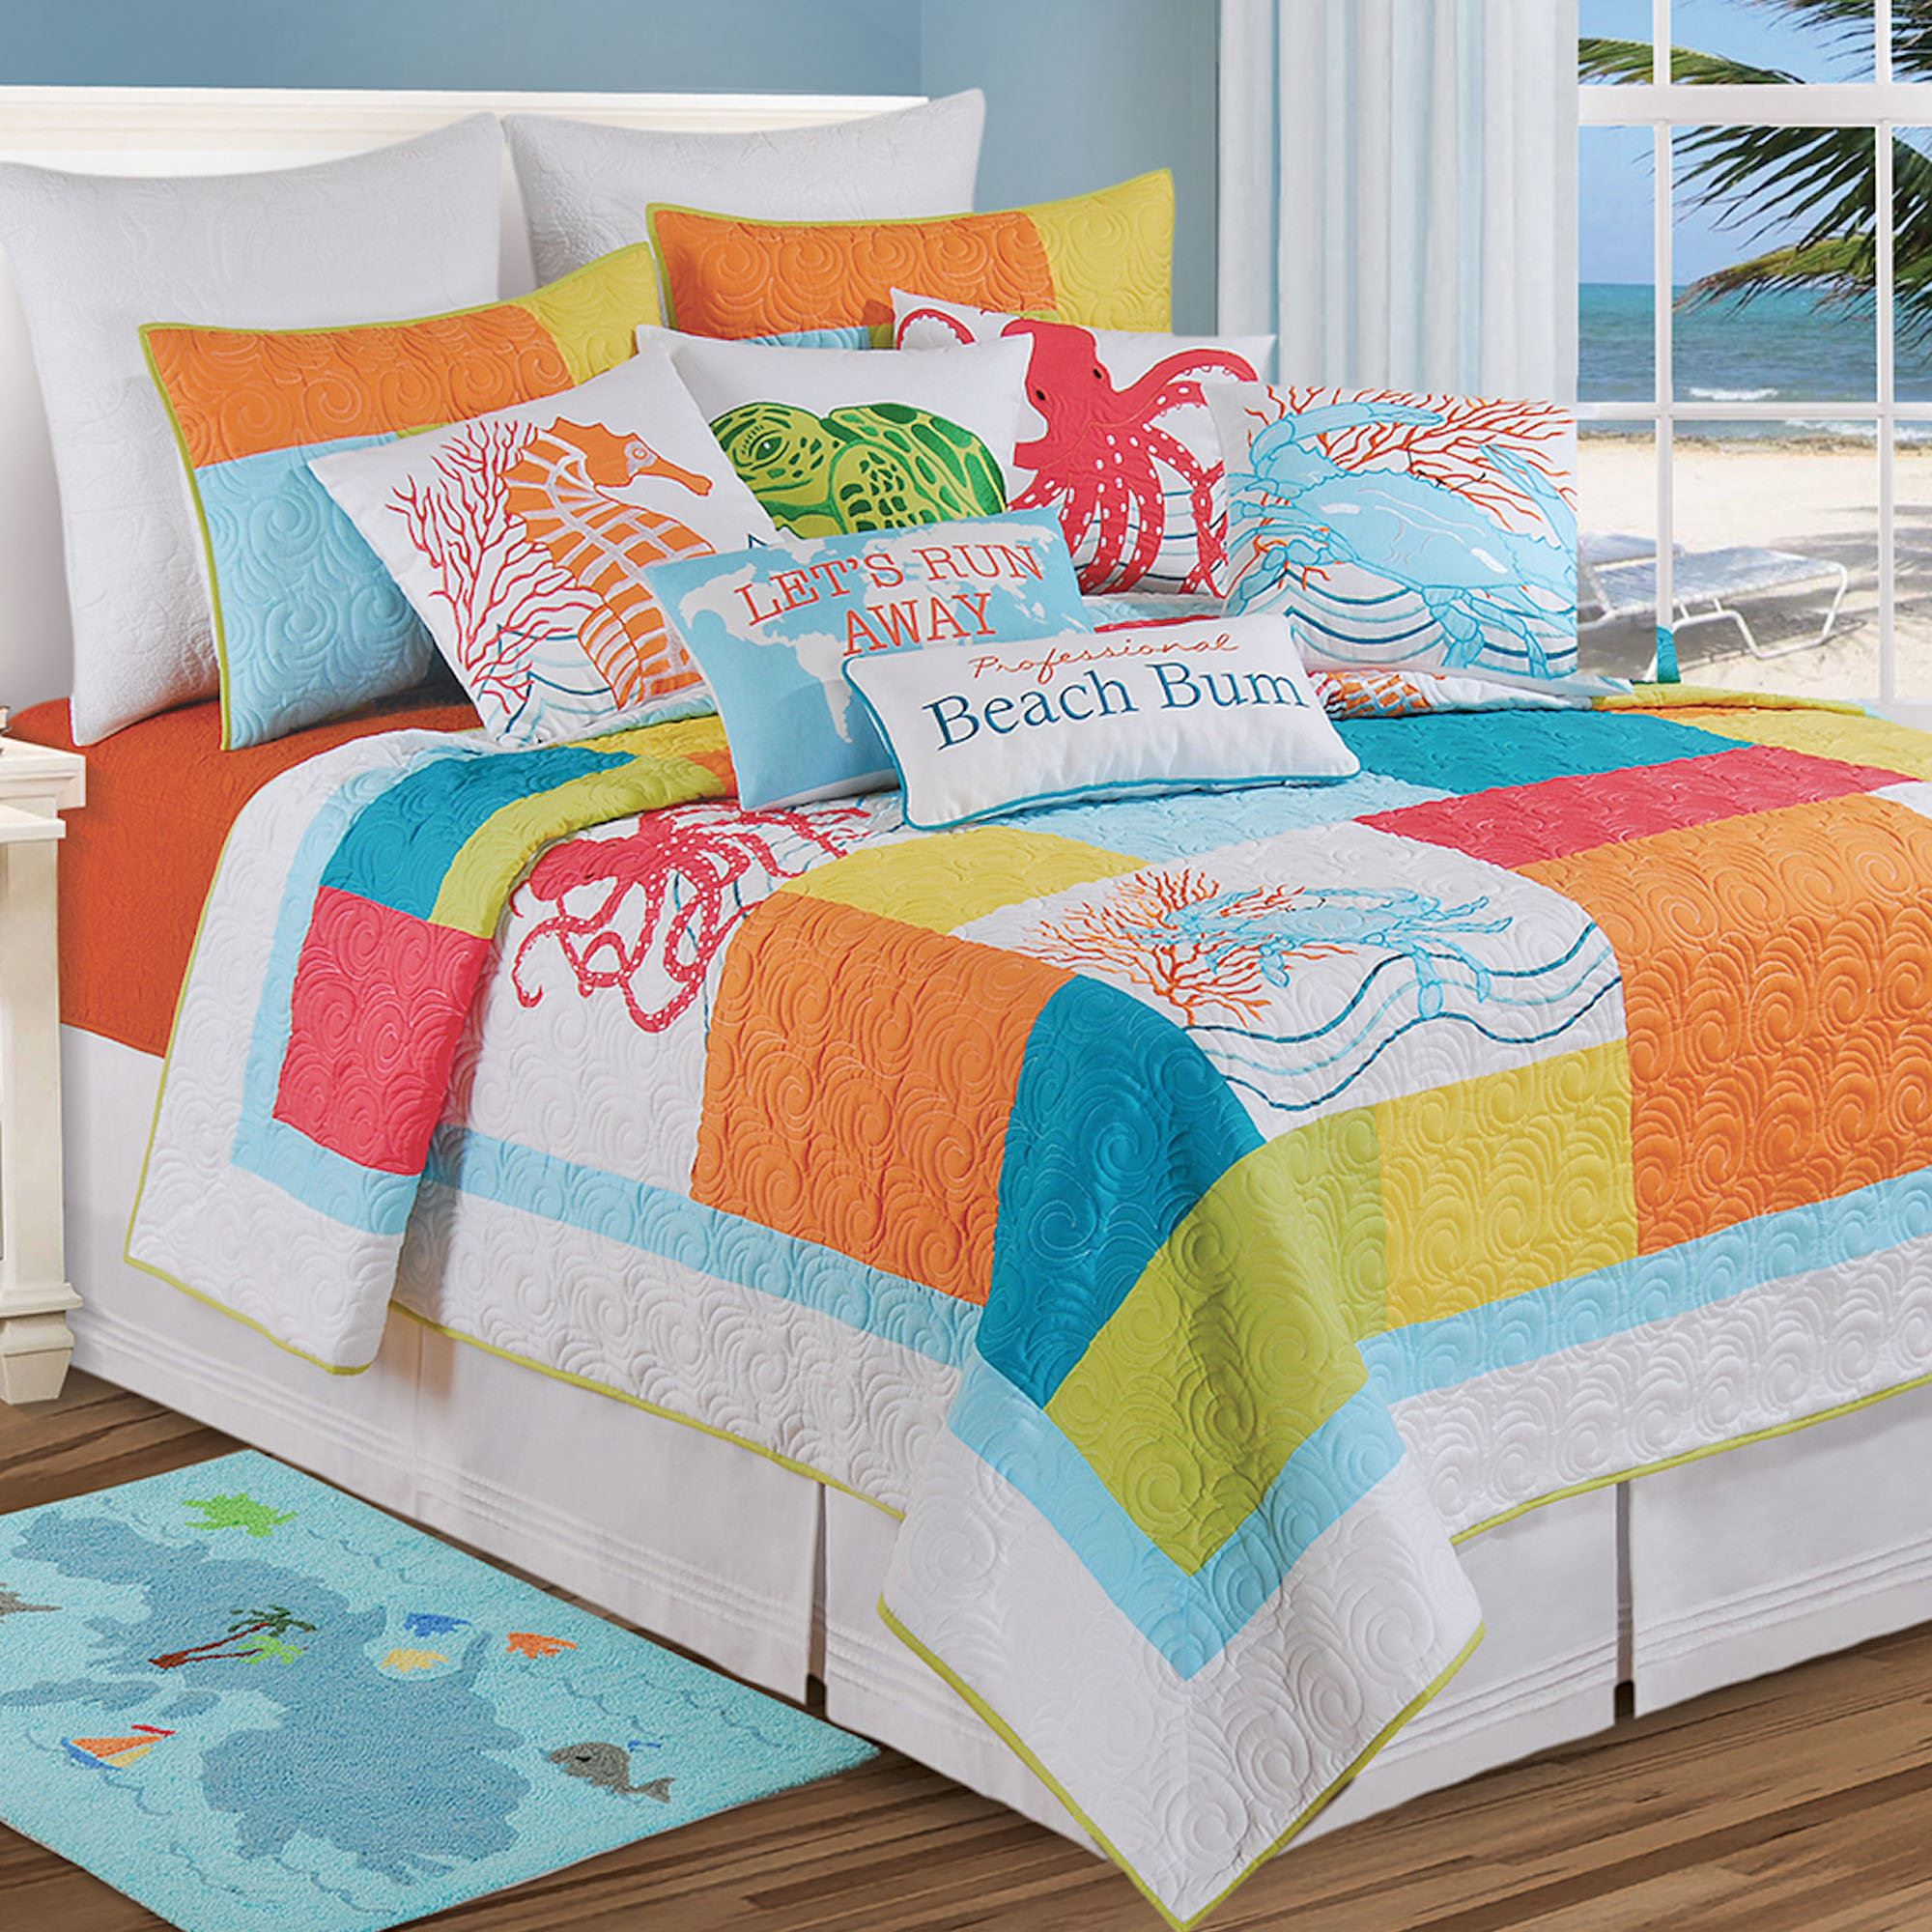 Turquoise Bedroom Accessories Tropic Escape Bright Coastal Beach Quilt Bedding